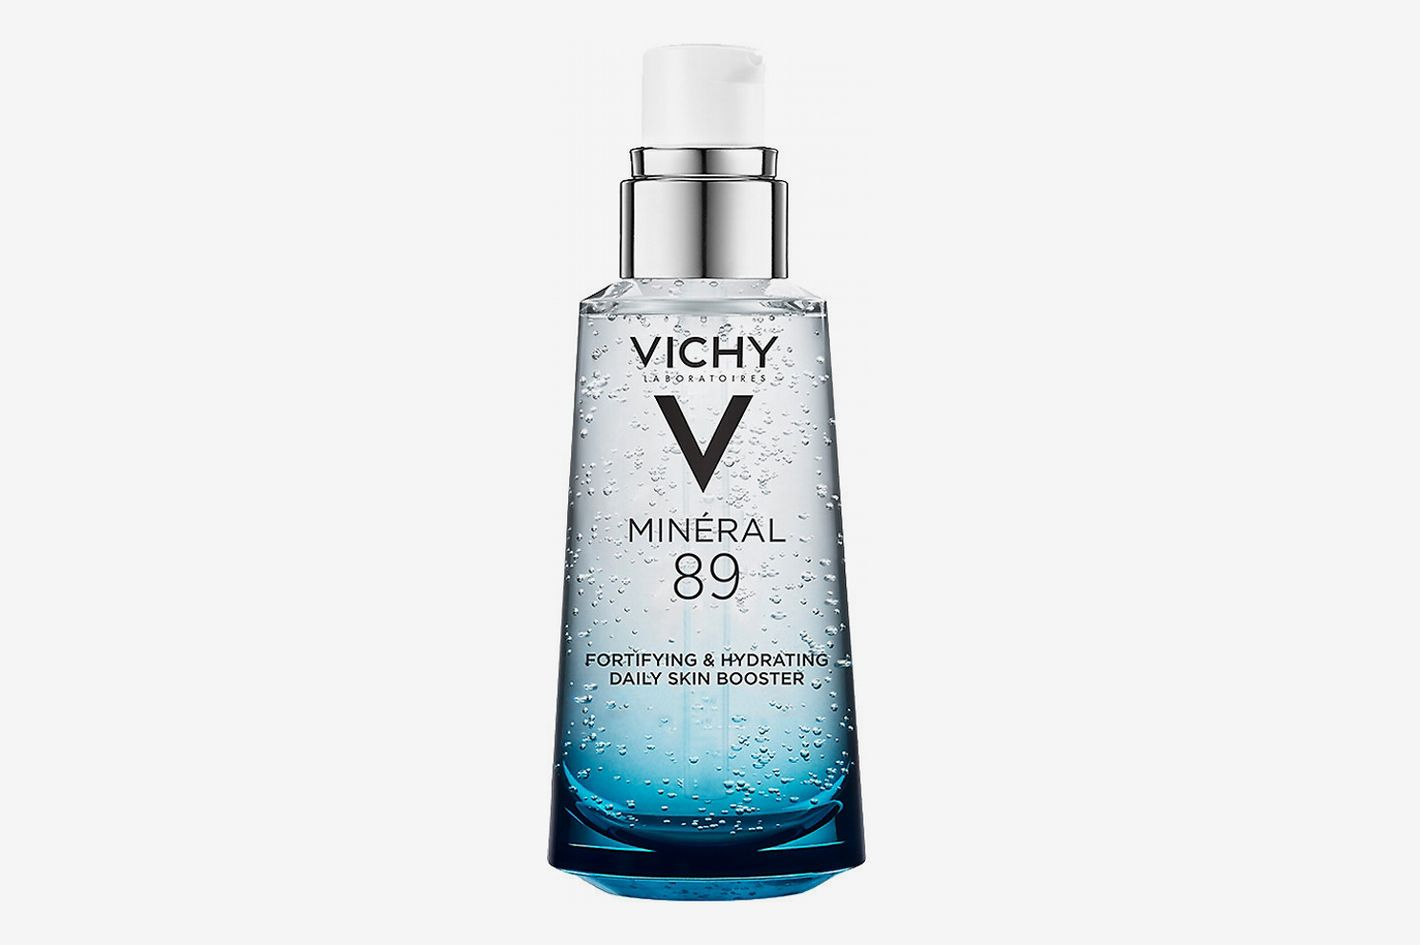 Vichy Mineral 89 Face Serum